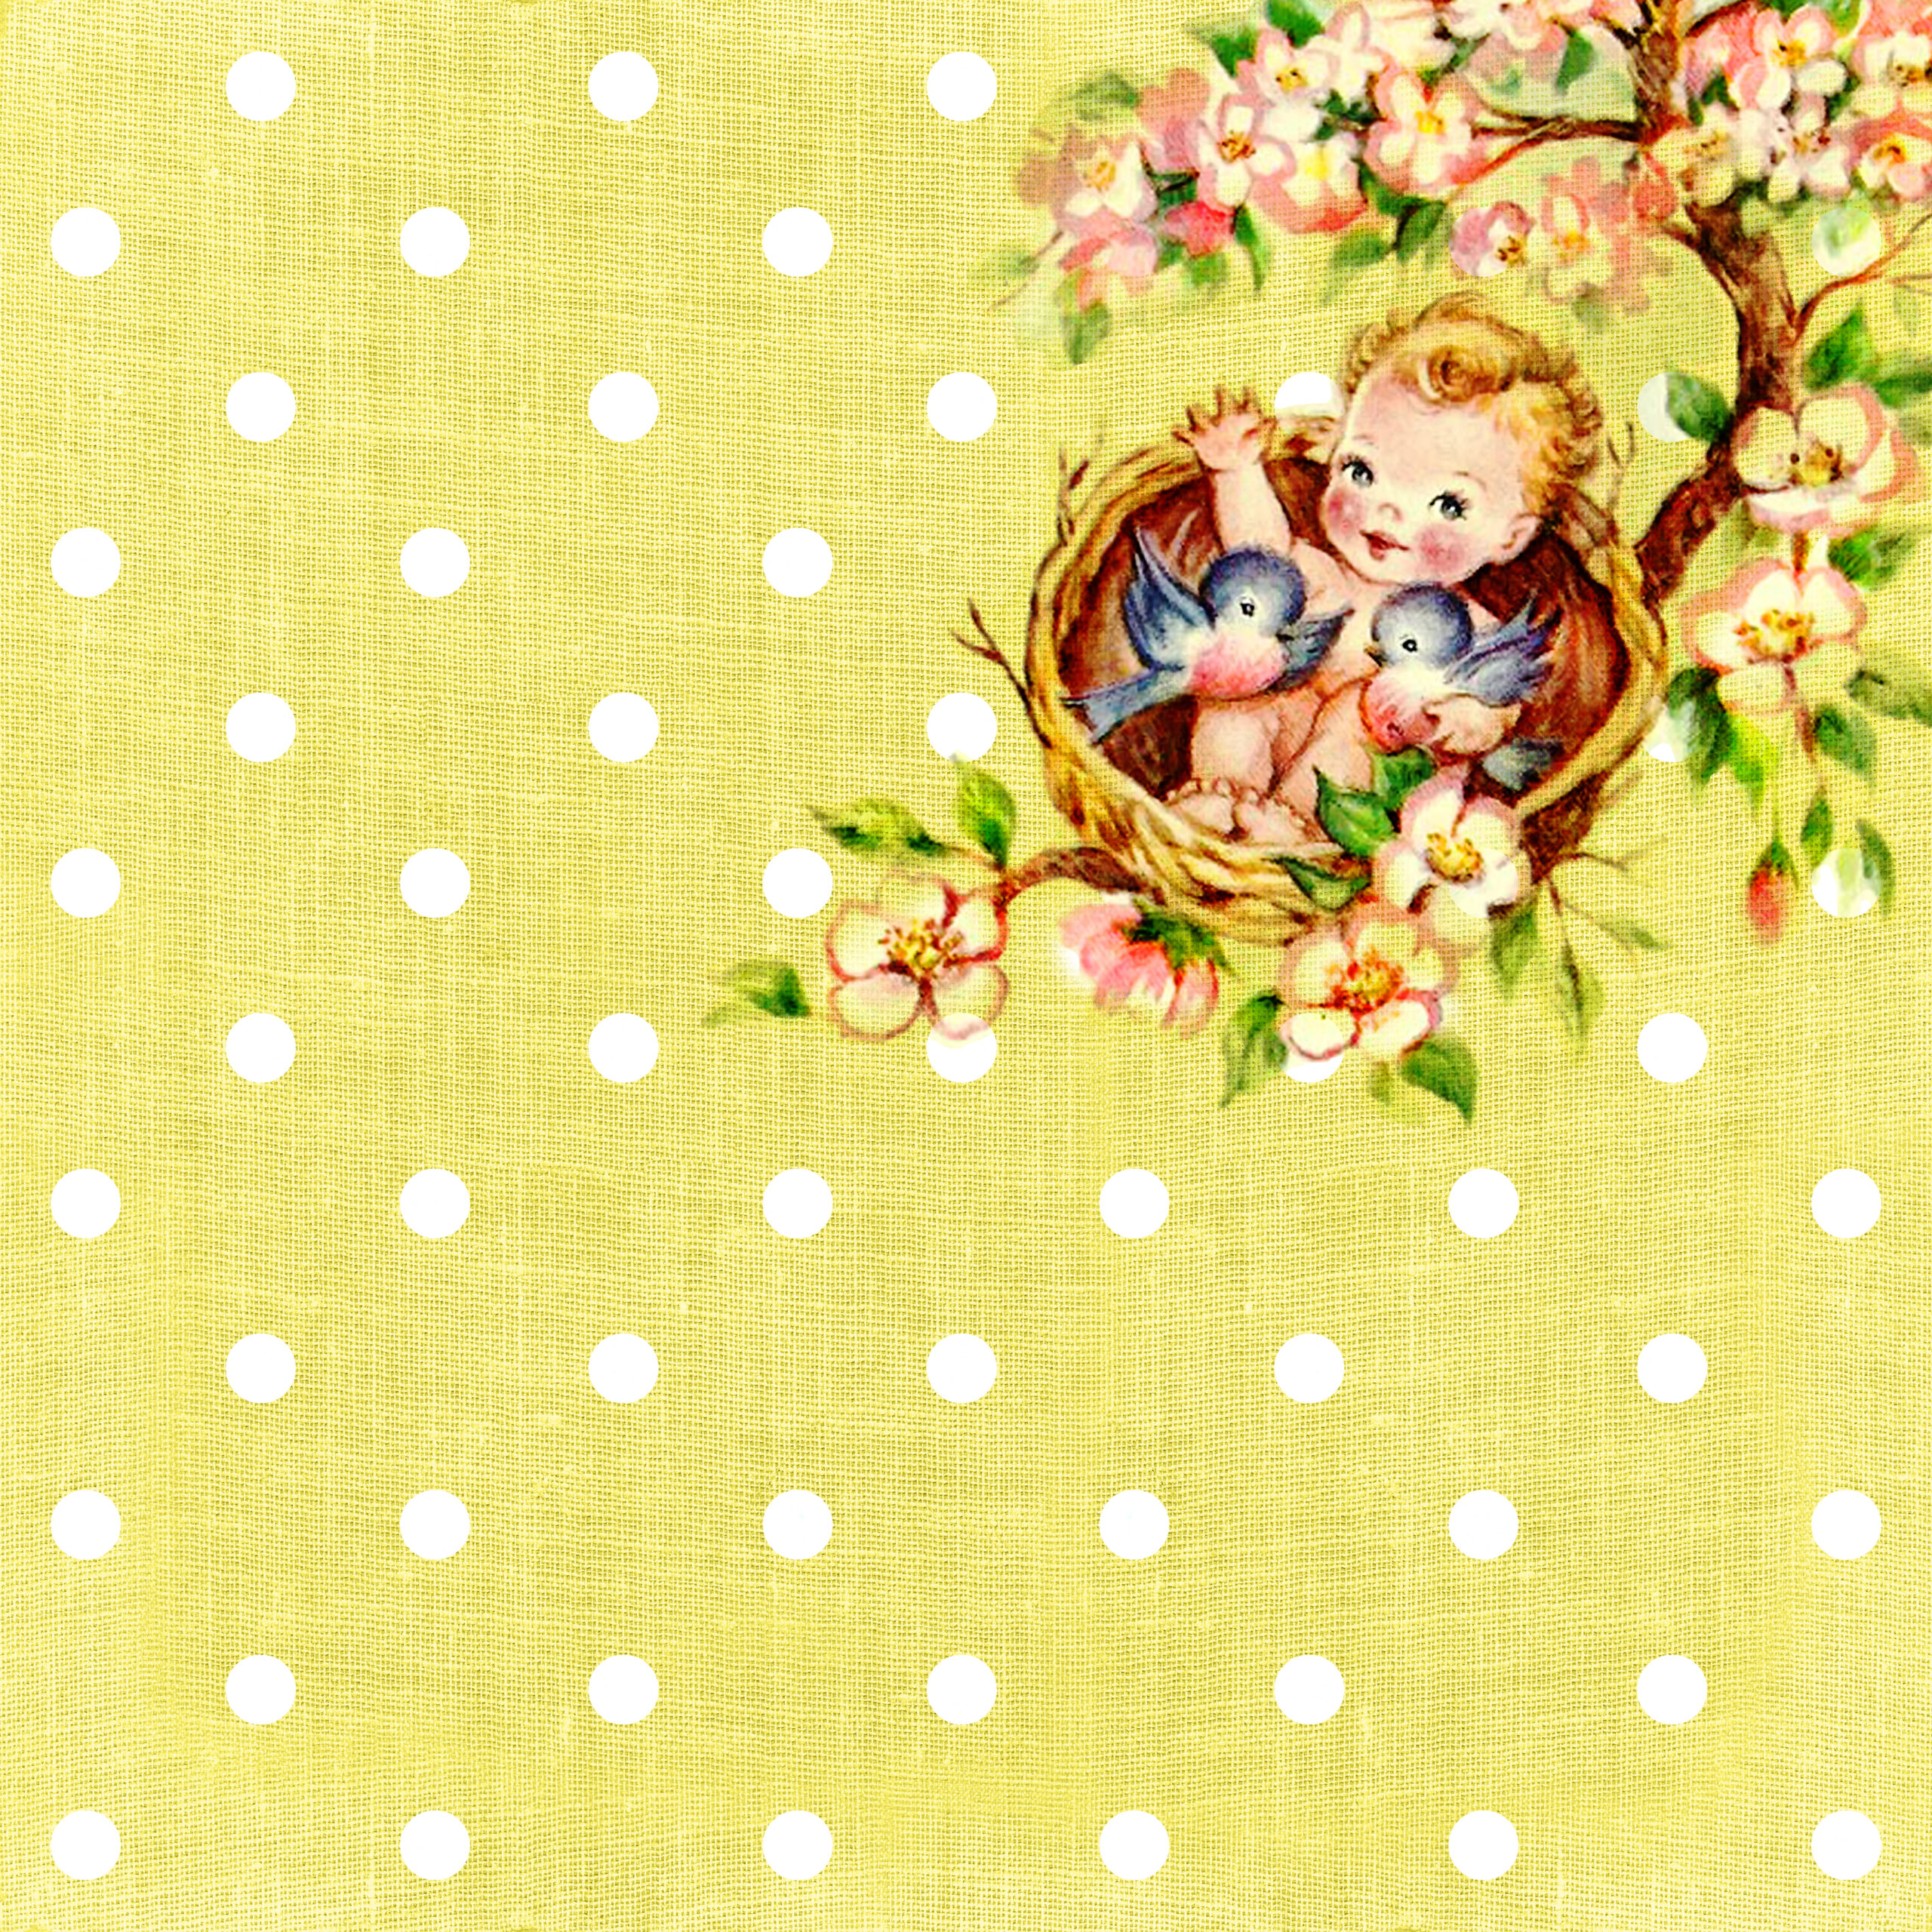 Digital scrapbooking kits free all about scrapbooking ideas - Free Digital Scrapbooking Paper Vintage Baby On The Tree Top Part 1